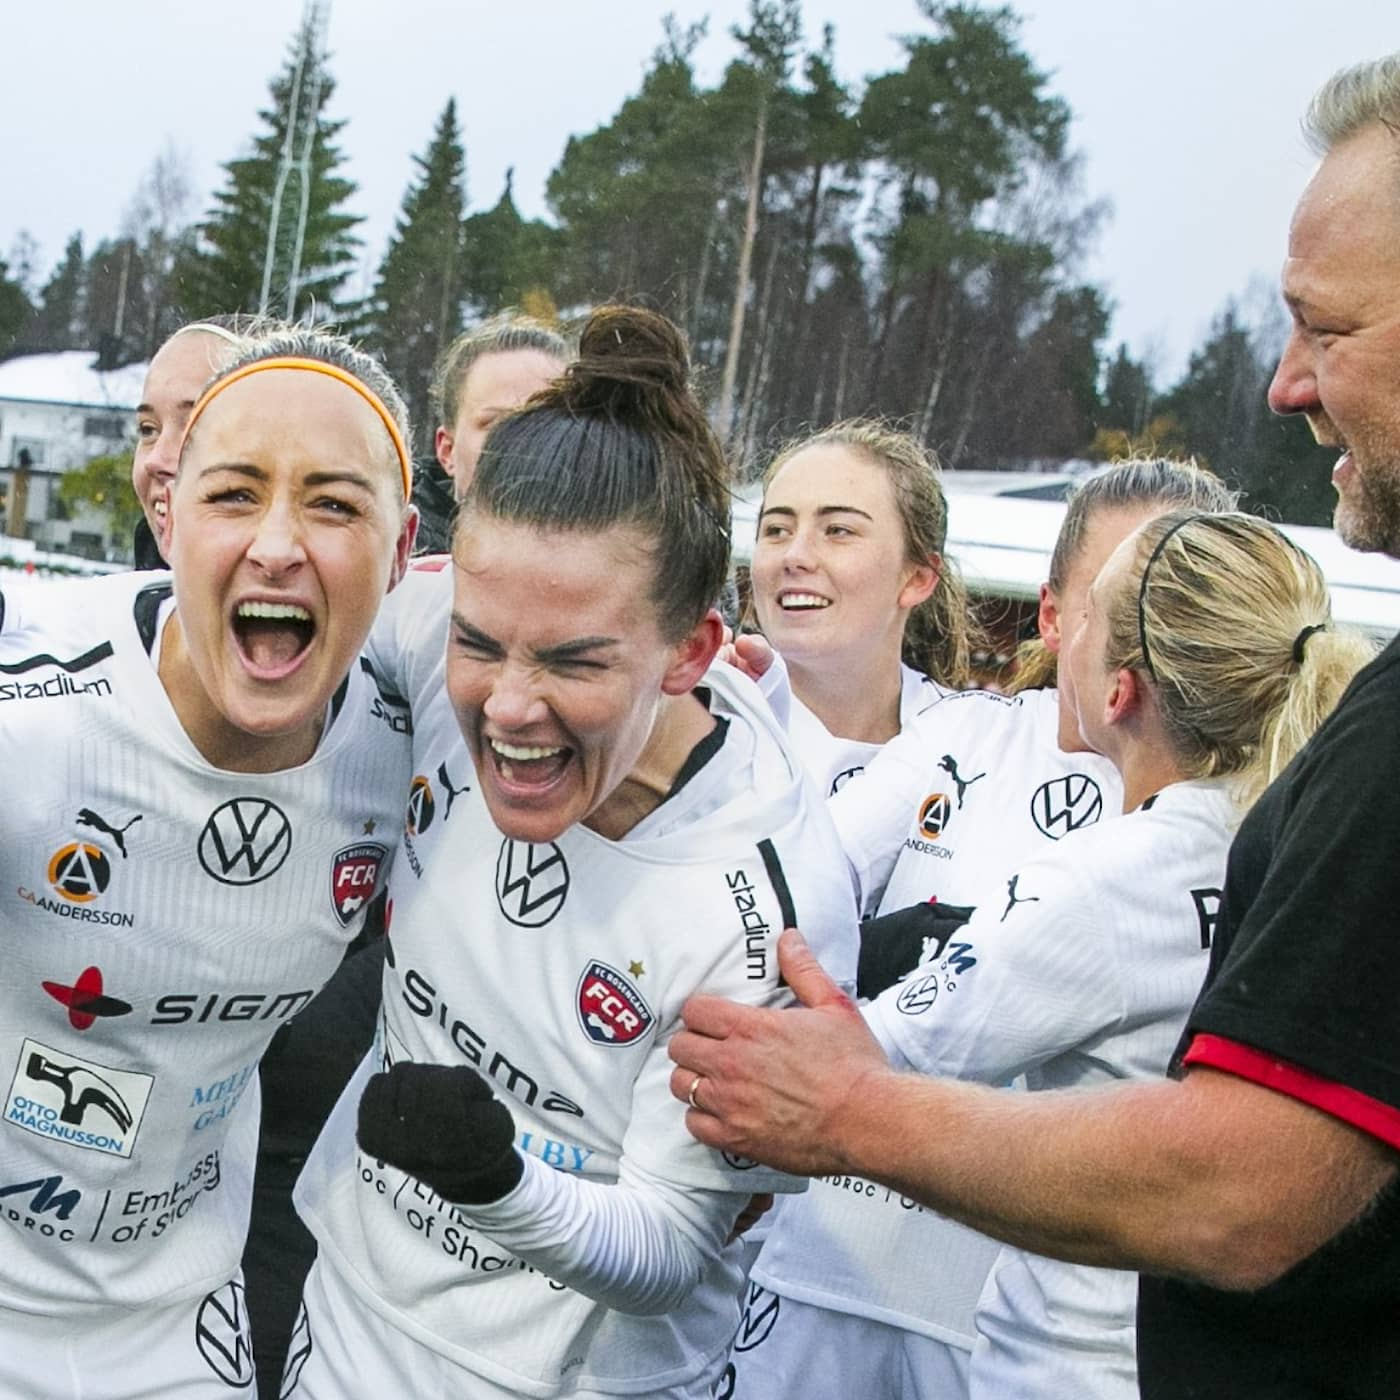 Uppsala loses court battle with military, Estonia dive footage released, Rosengård wins women's football league